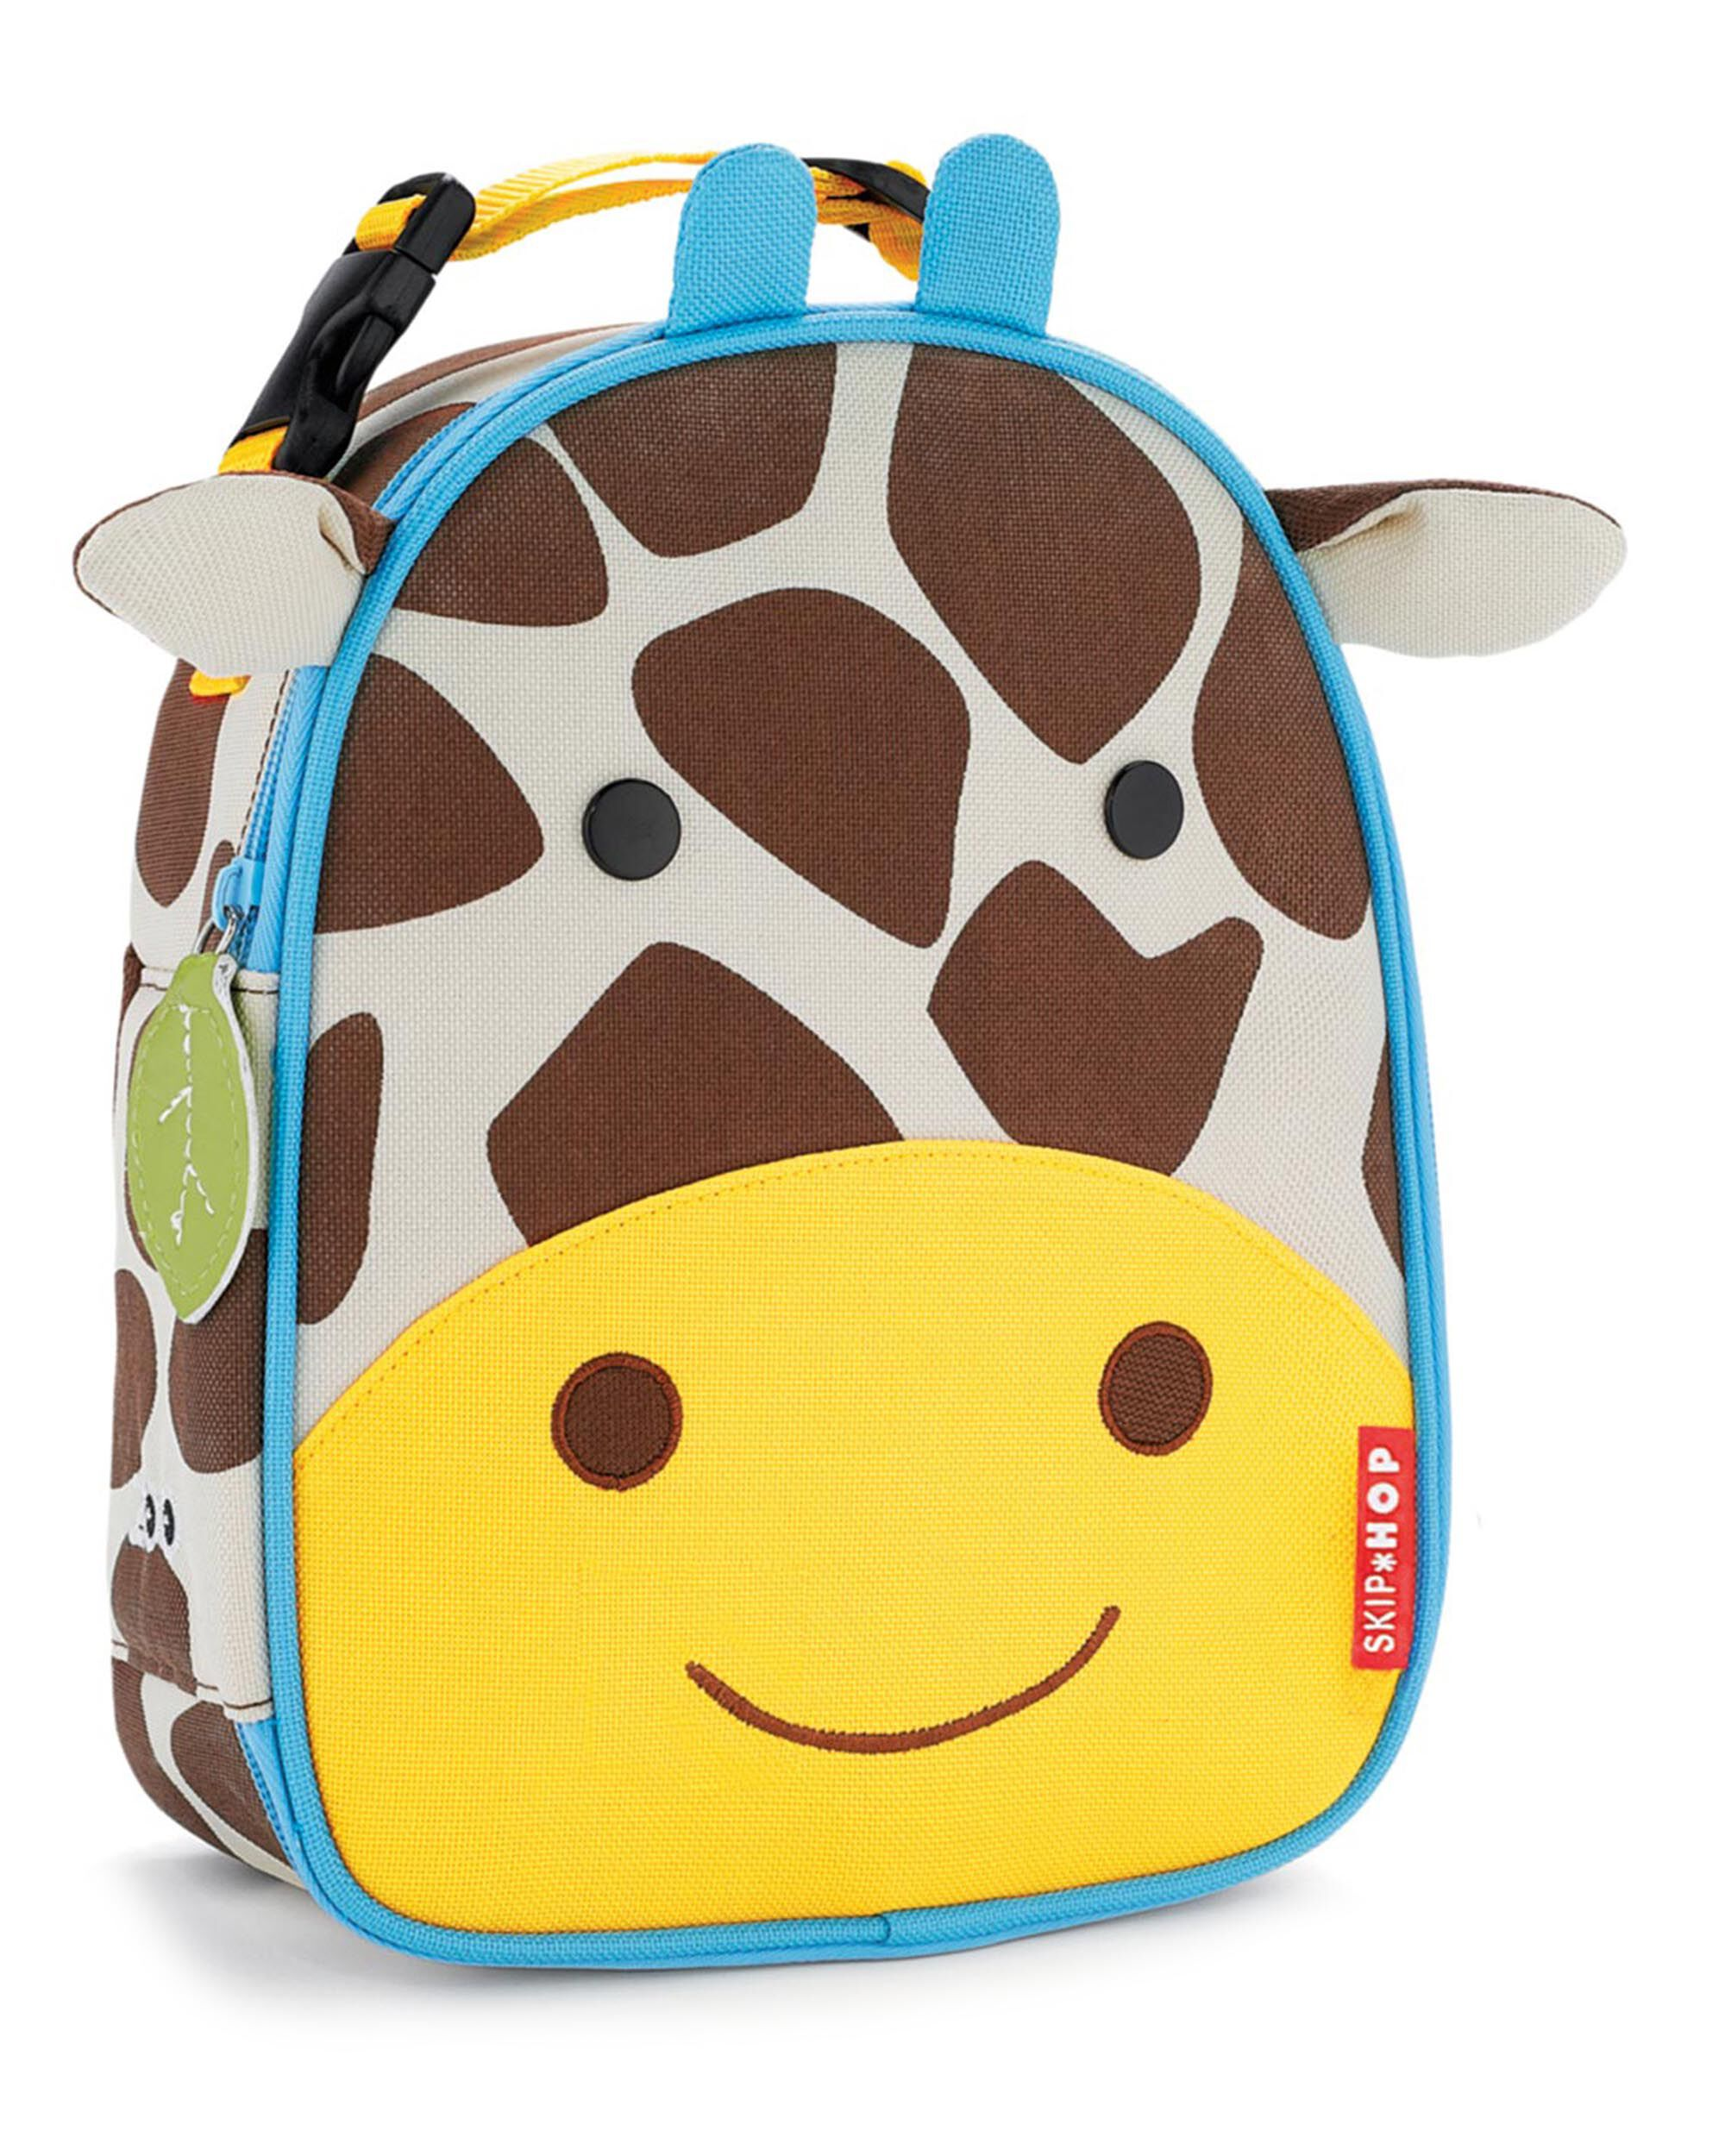 00e712443c72 ... Zoo Lunchie Insulated Kids Lunch Bag ...